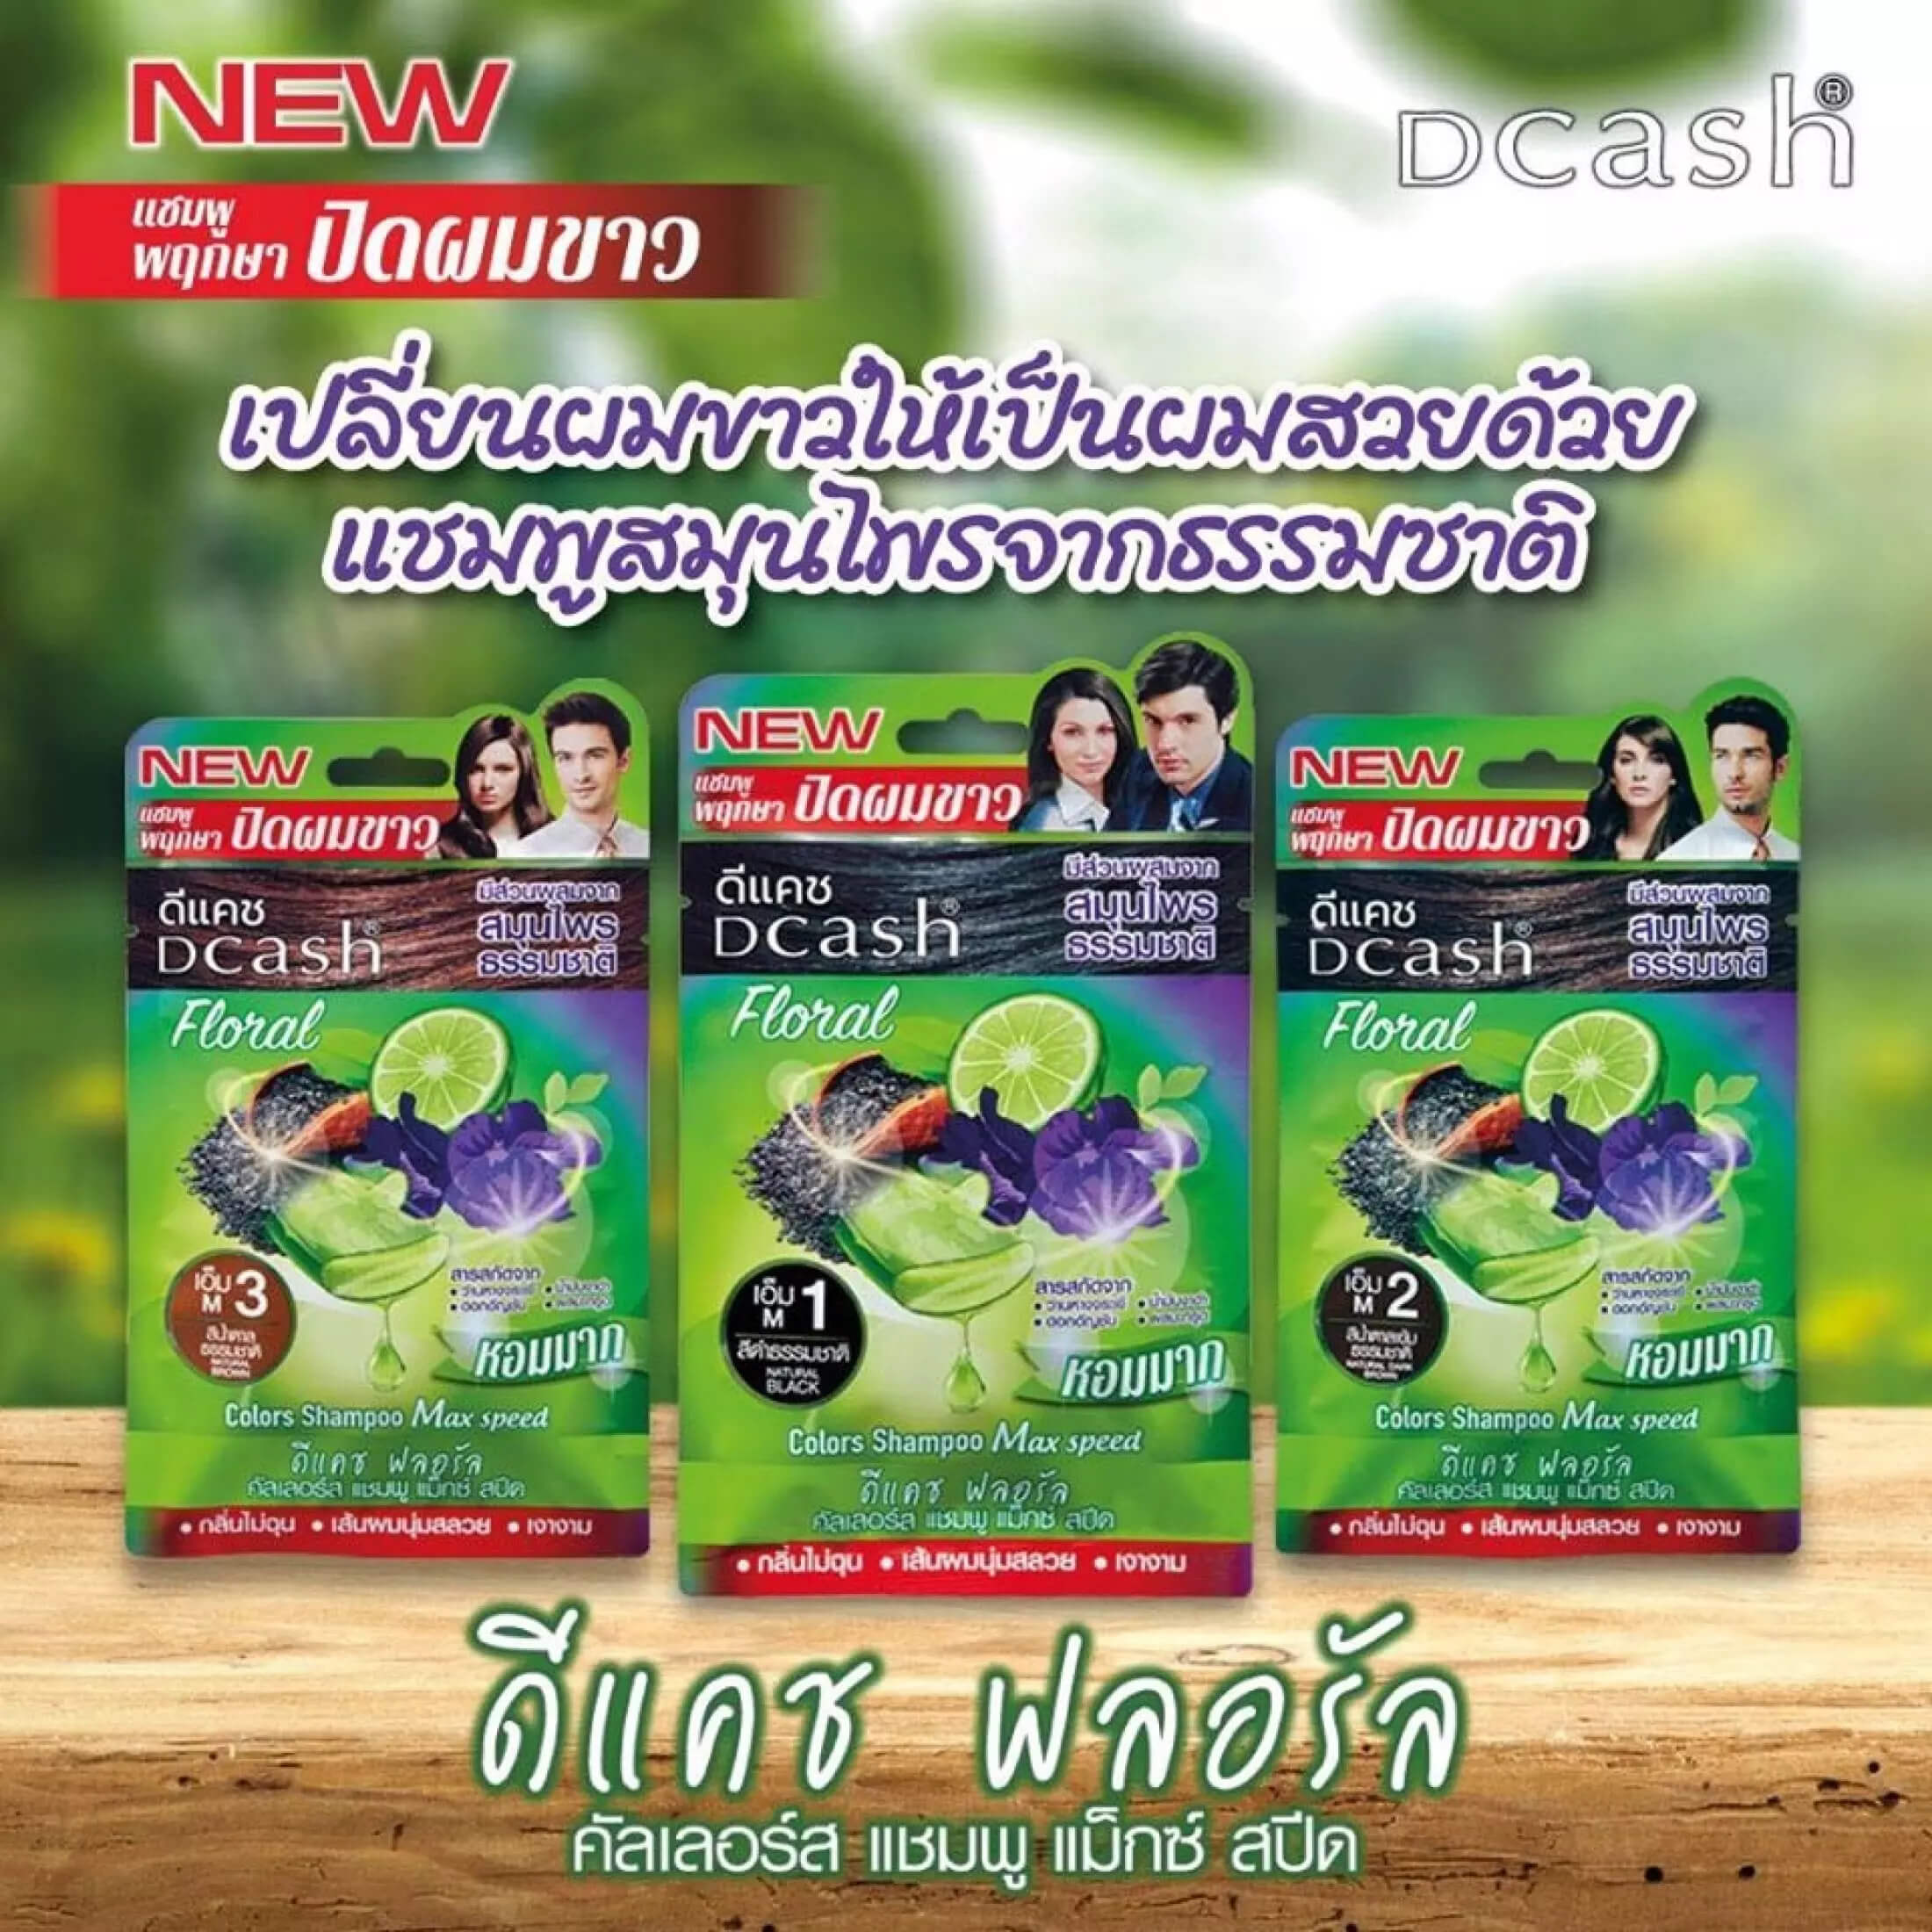 DCASH MAX SPEED COLOR SHAMPOO